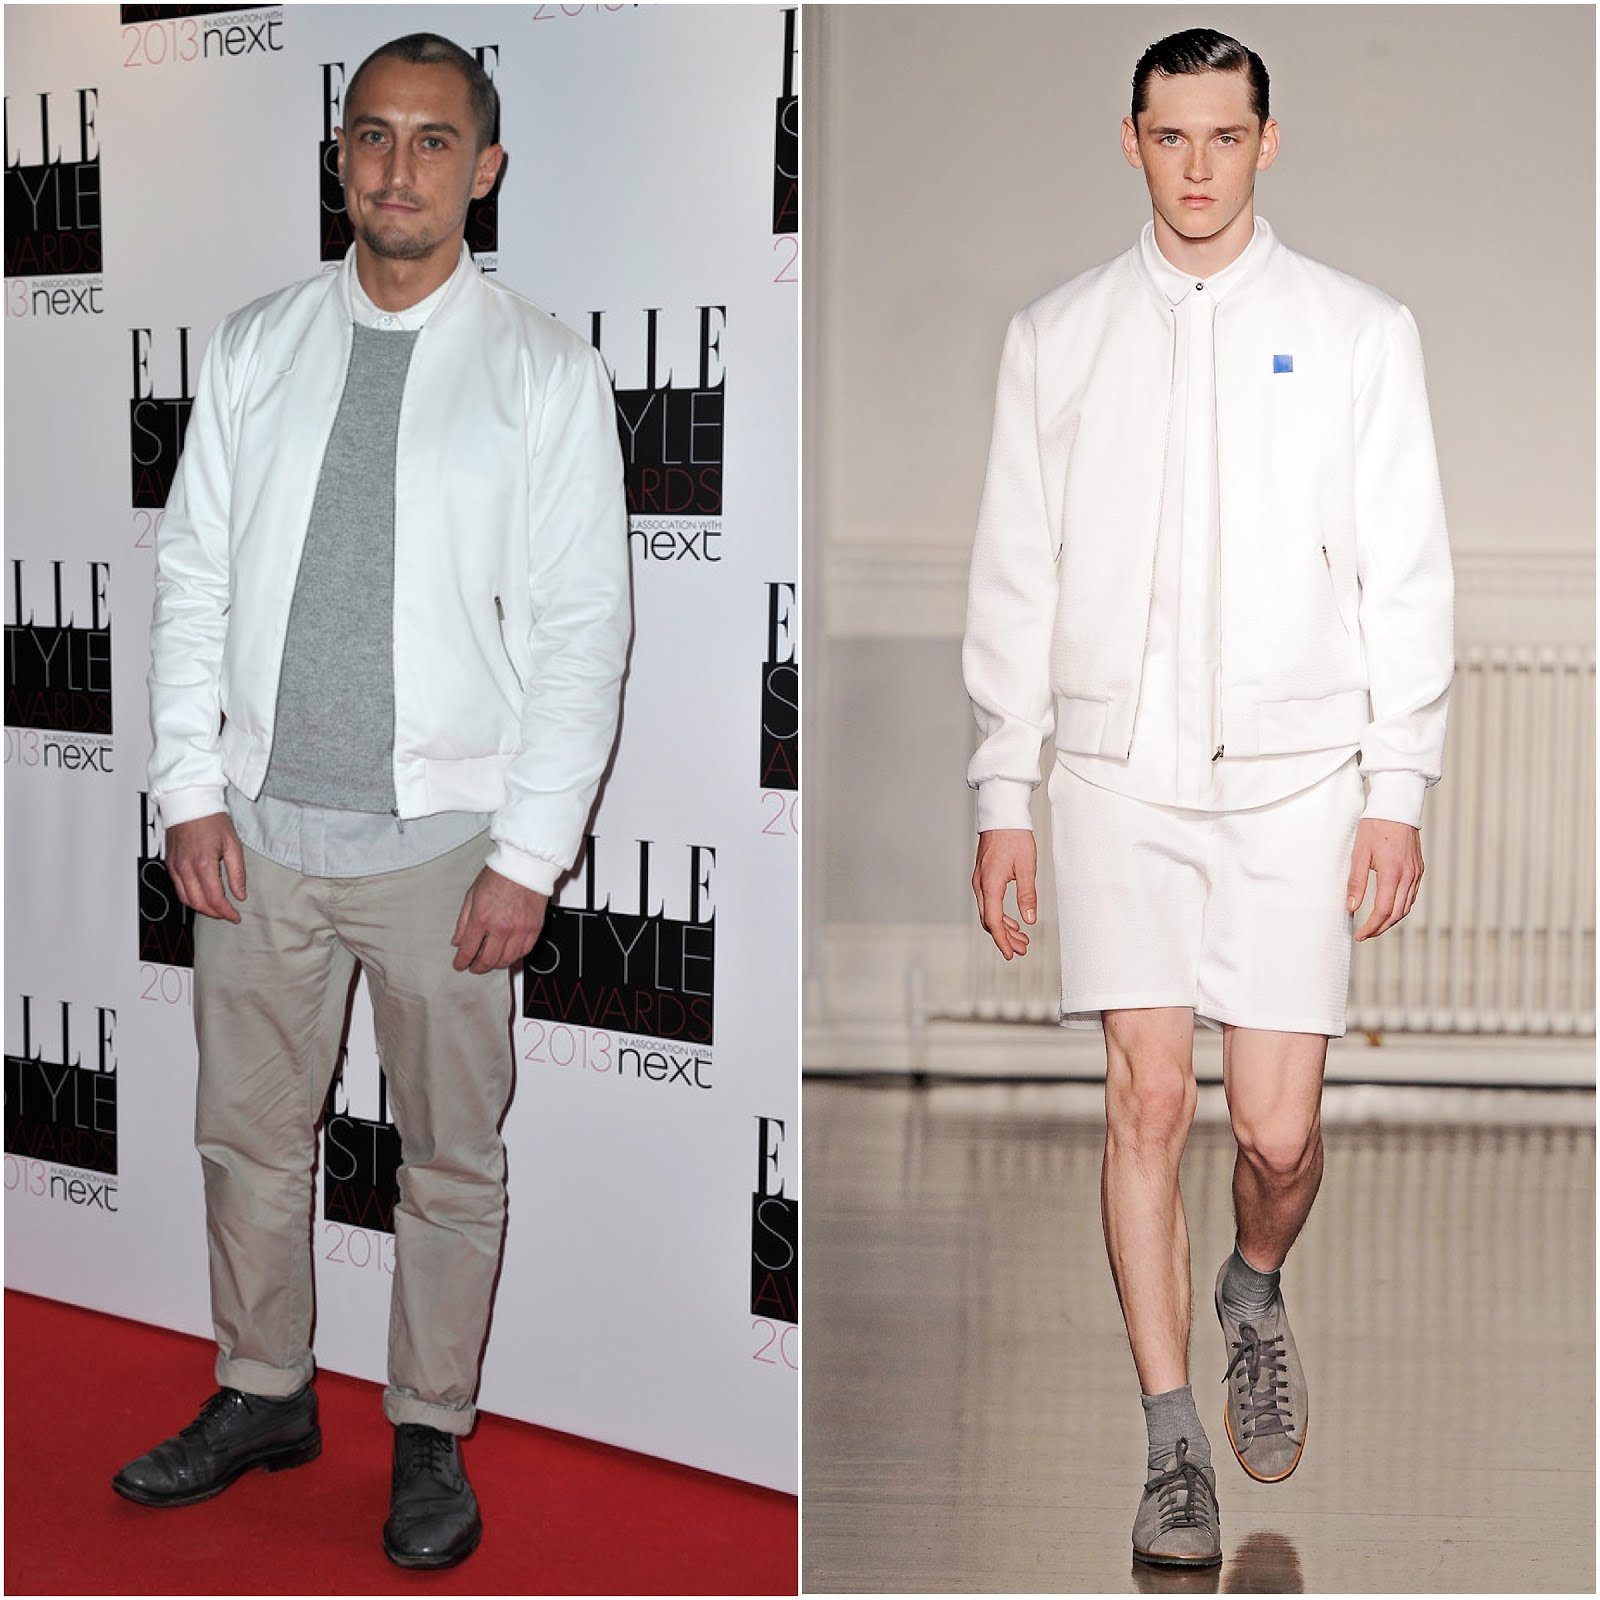 00O00 Menswear Blog Richard Nicoll in Richard Nicoll - 2013 Elle Style Awards